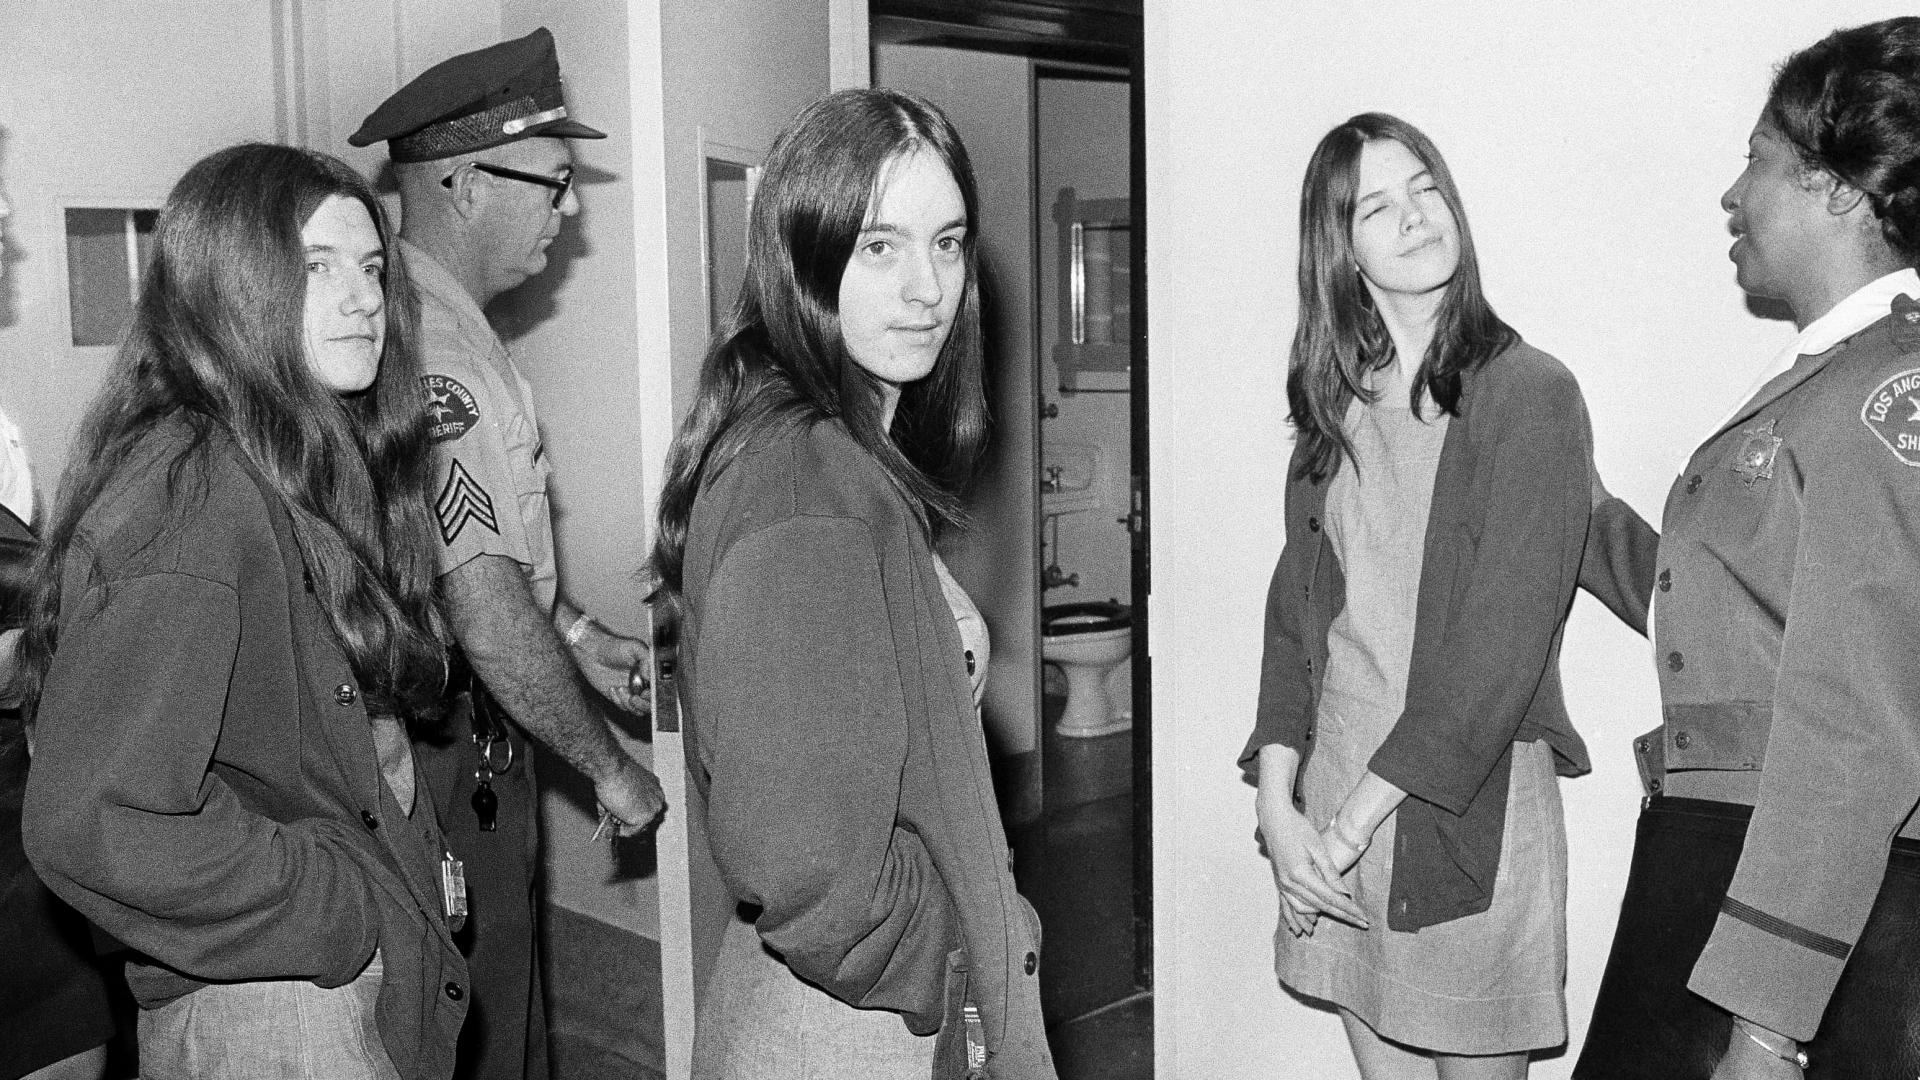 """Leslie Van Houten, Susan Atkins and Patricia Krenwinkel, co-defendants with Charles Manson in the Sharon Tate murder trial, walking toward a Los Angeles courtroom to listen to further cross-examination of Linda Kasabian, the state's principal witness against them. Willingly joining Manson's """"family,"""" these women were manipulated by Manson into carrying out his murderous orders. Sometimes, they even referred to themselves as a sorority called, """"Charlie's Girls."""" (Credit: Wally Fong/AP Photo)"""